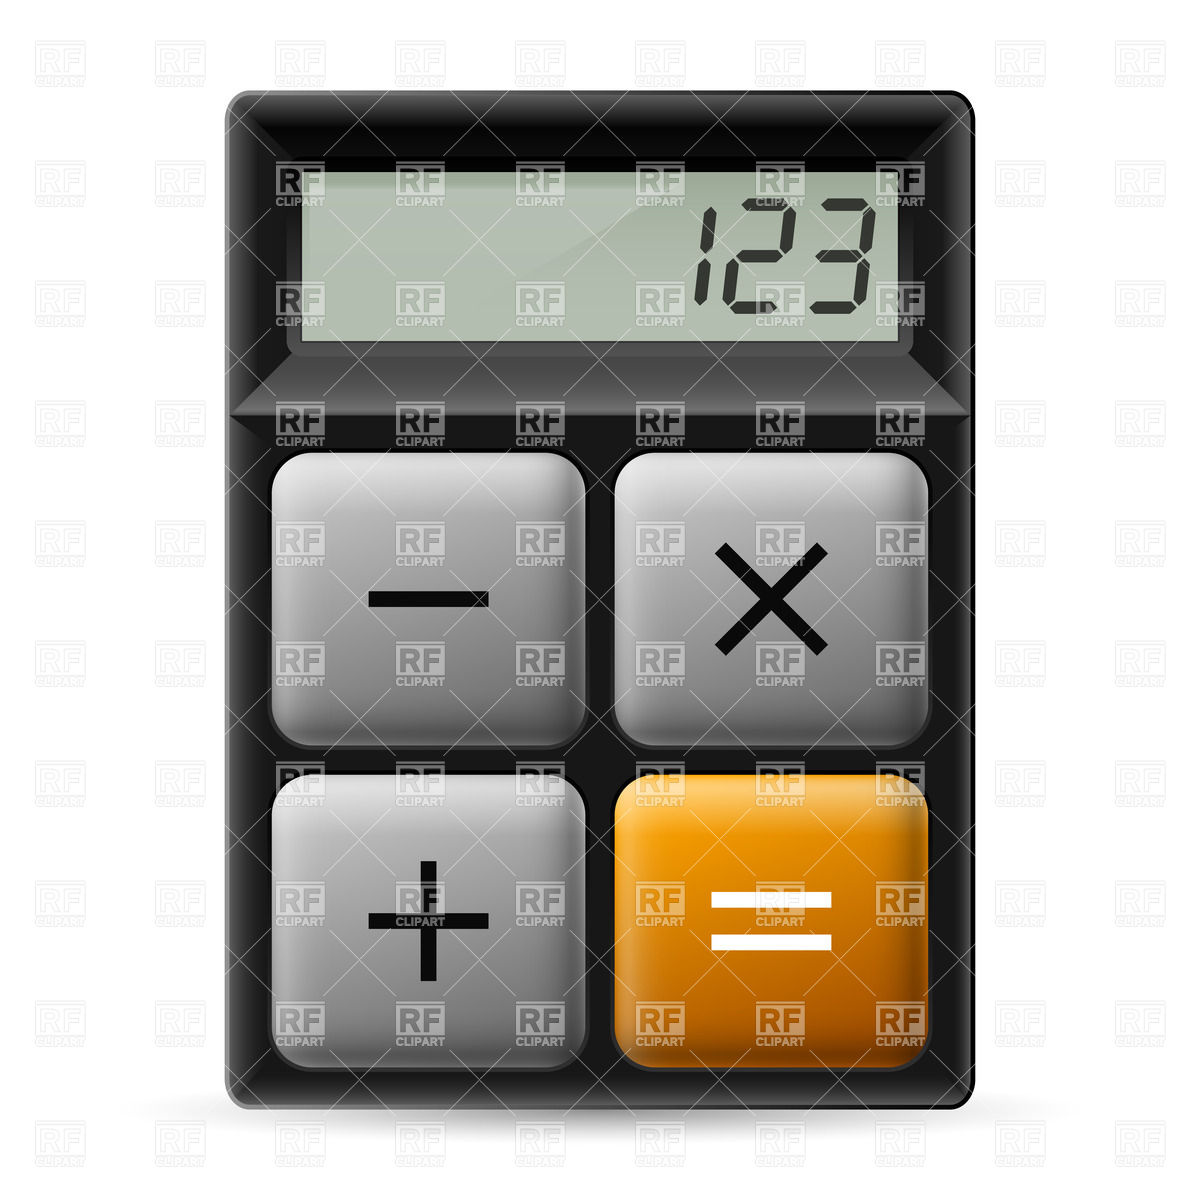 1200x1200 Simple Calculator Icon Vector Image Vector Artwork Of Icons And